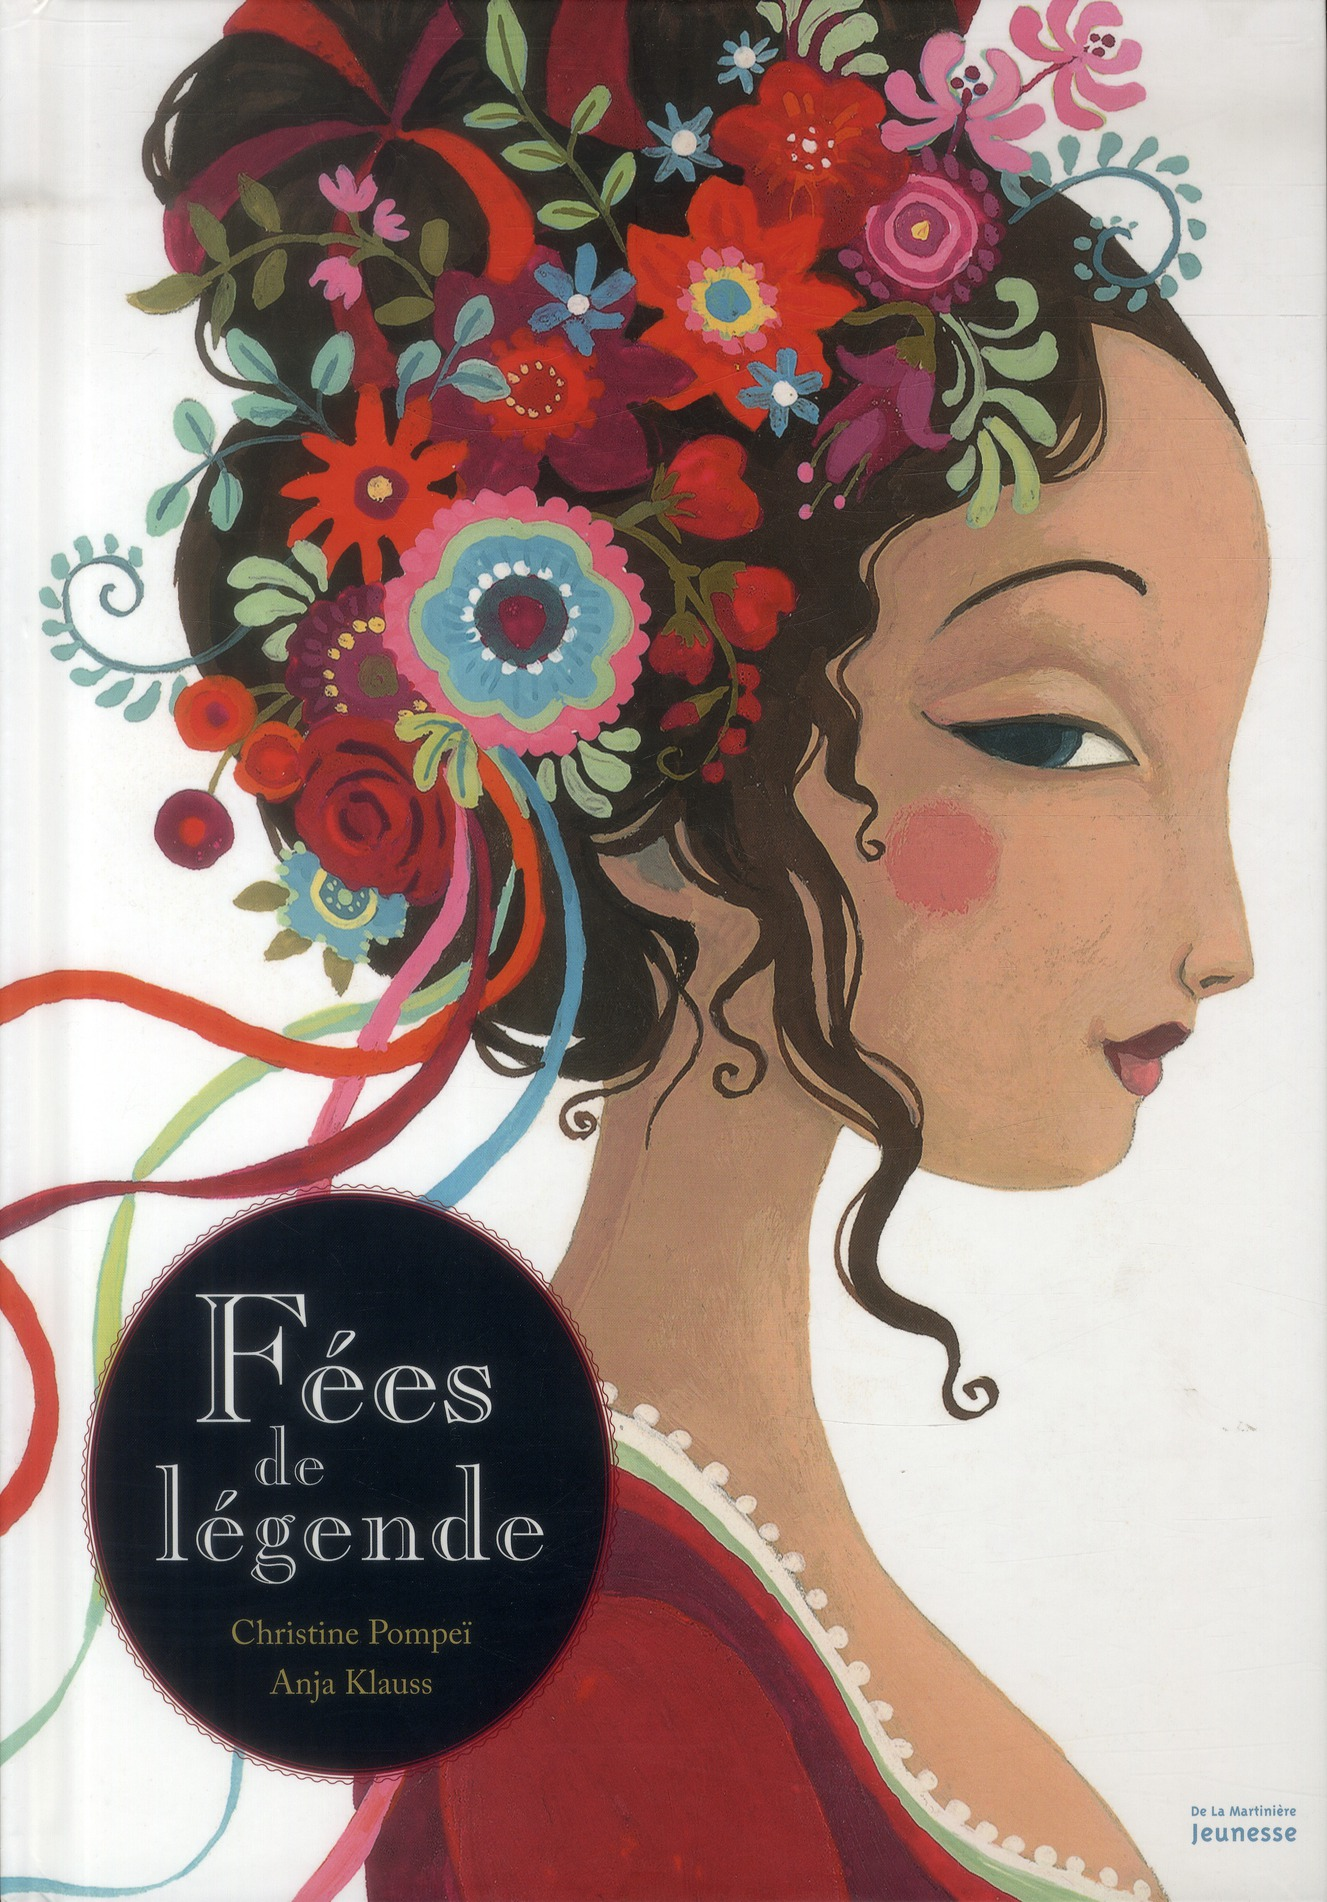 FEES DE LEGENDE